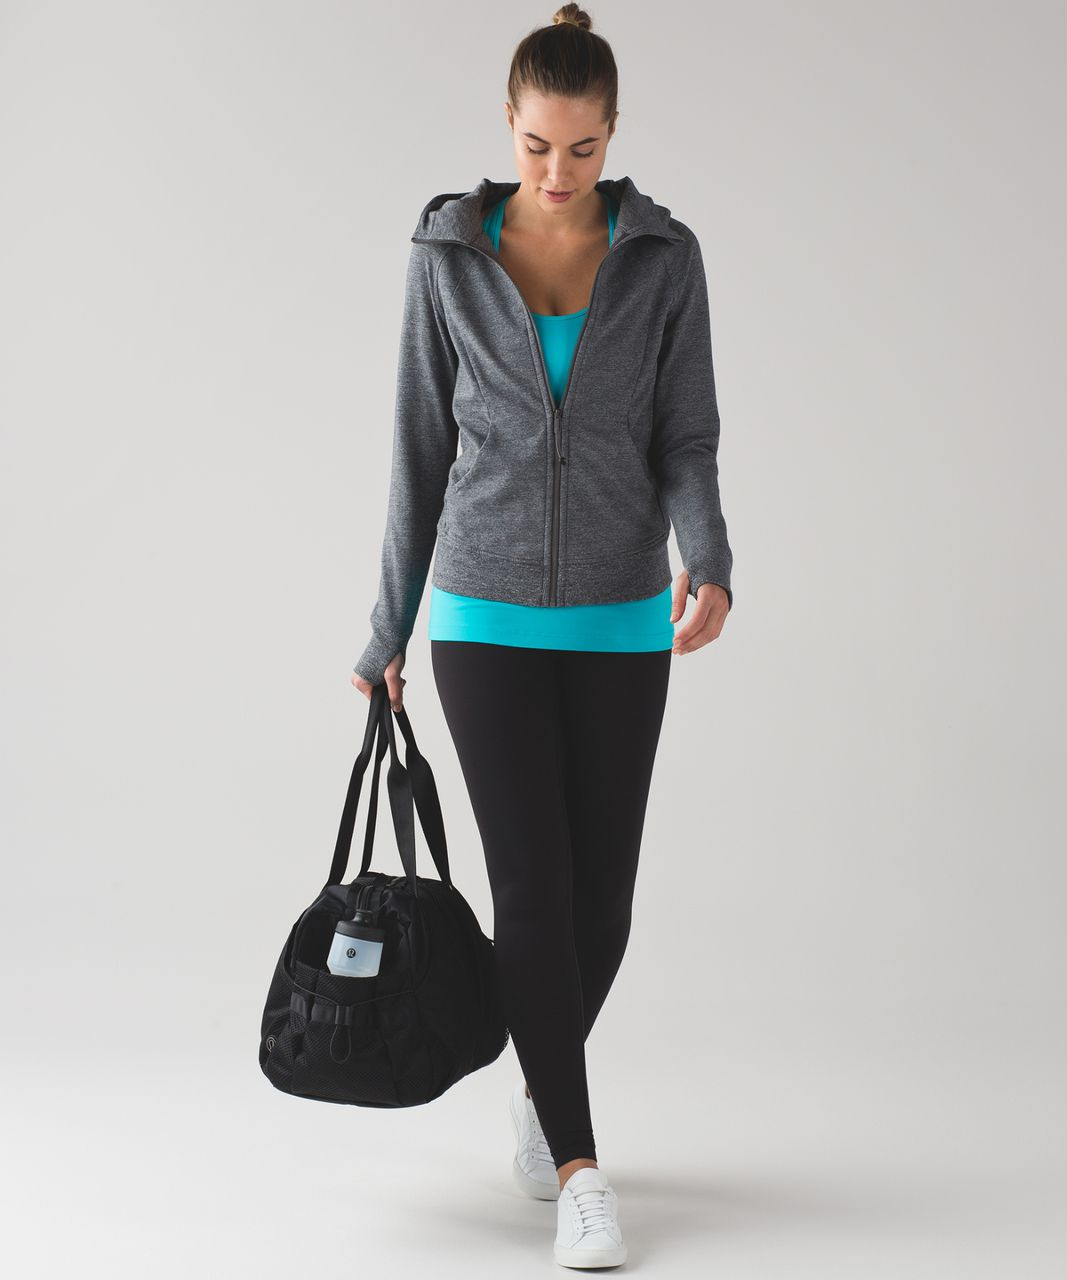 Lululemon Cool Racerback - Peacock Blue